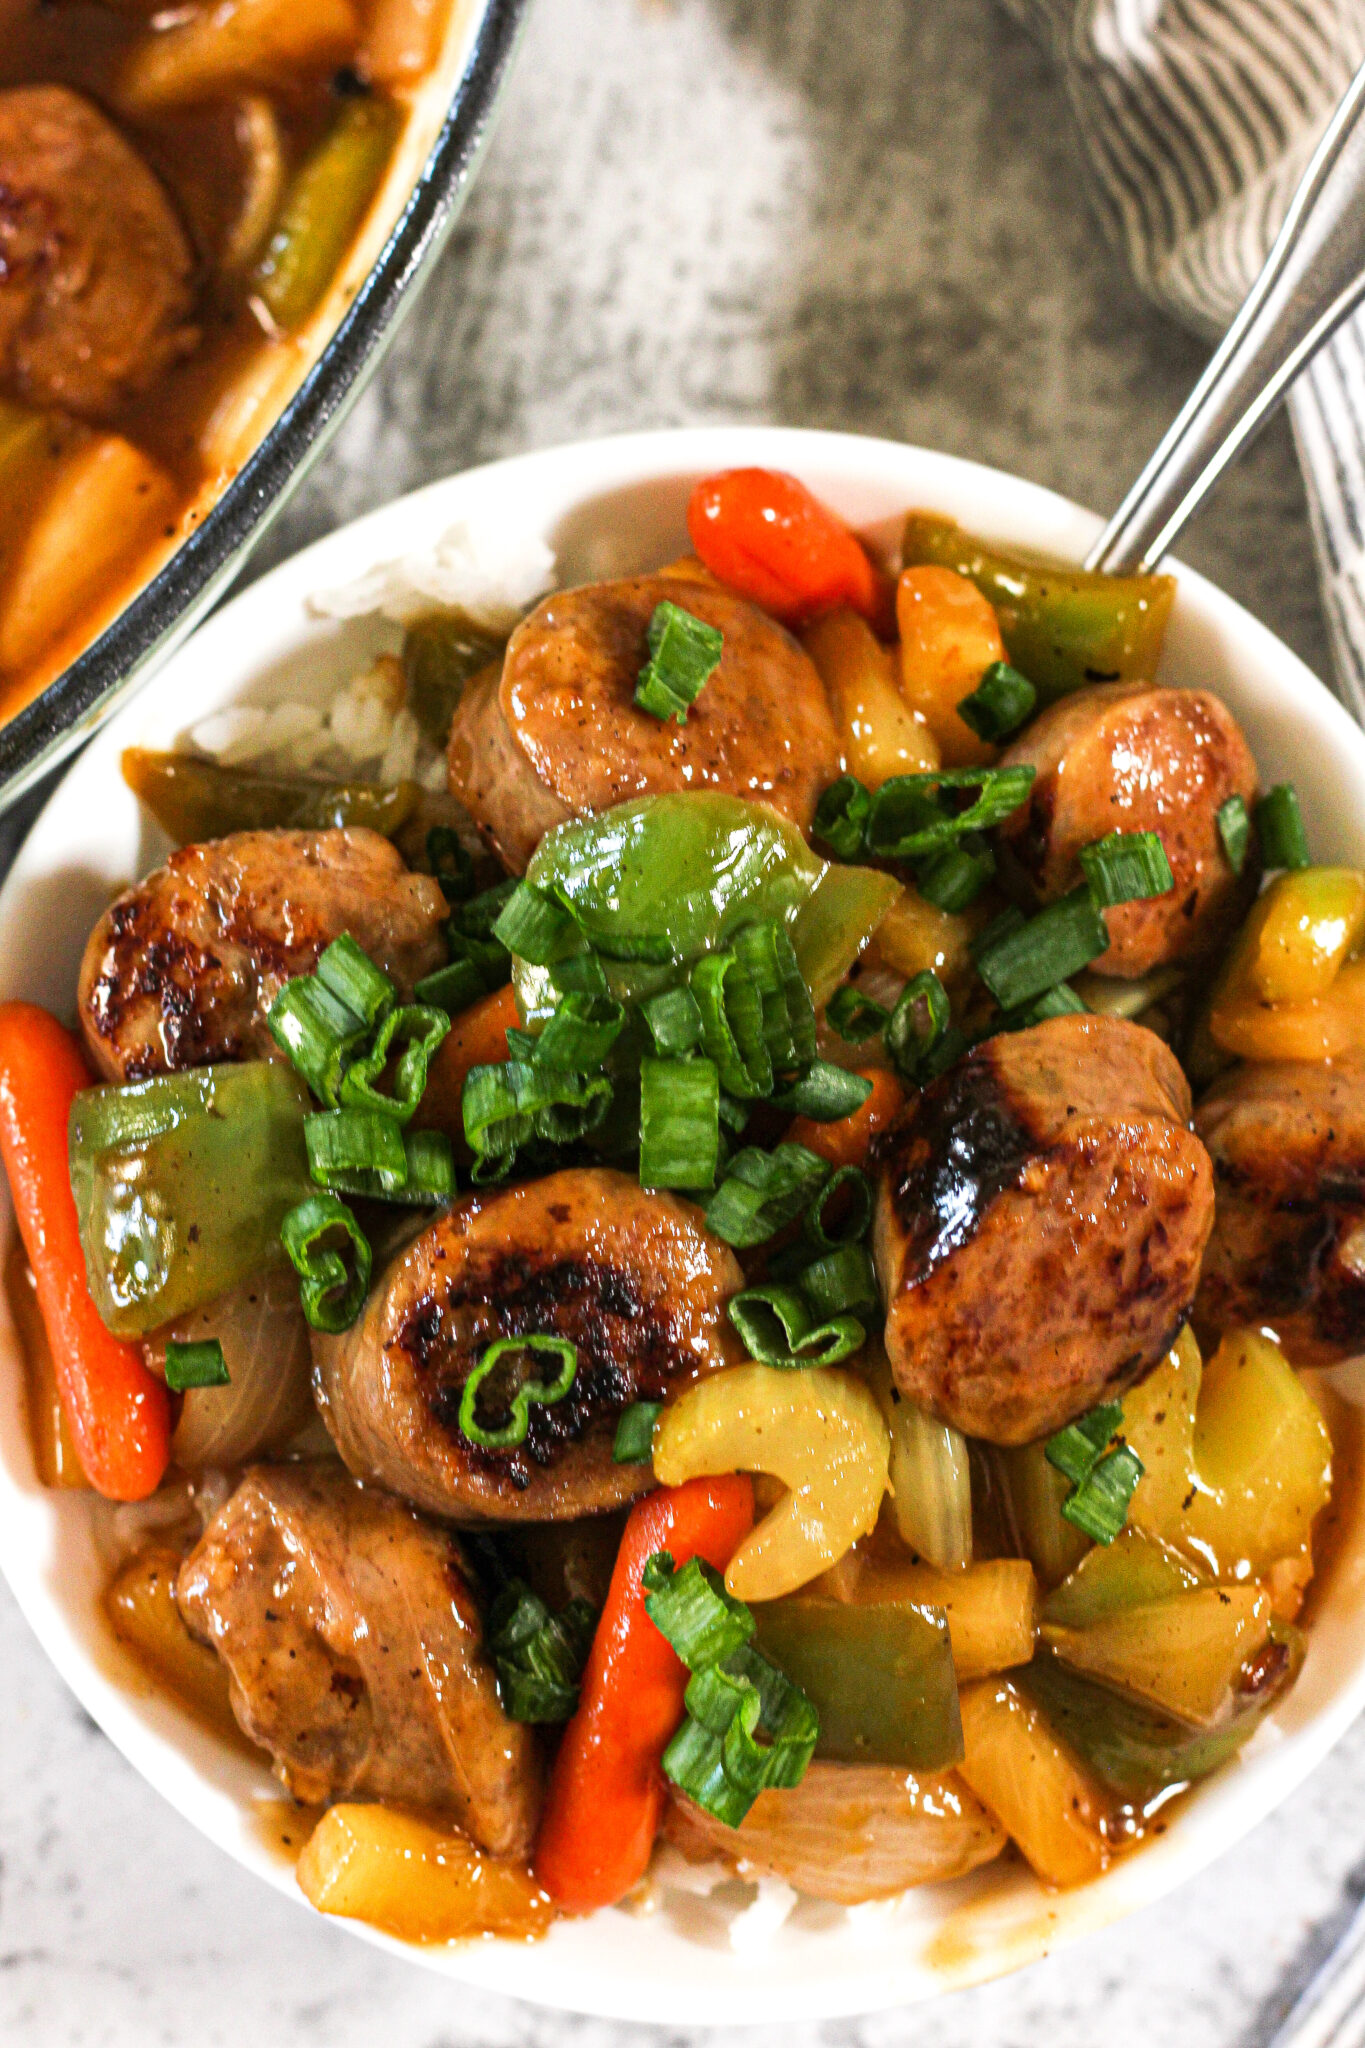 pepper and sausages in sweet and sour sauce